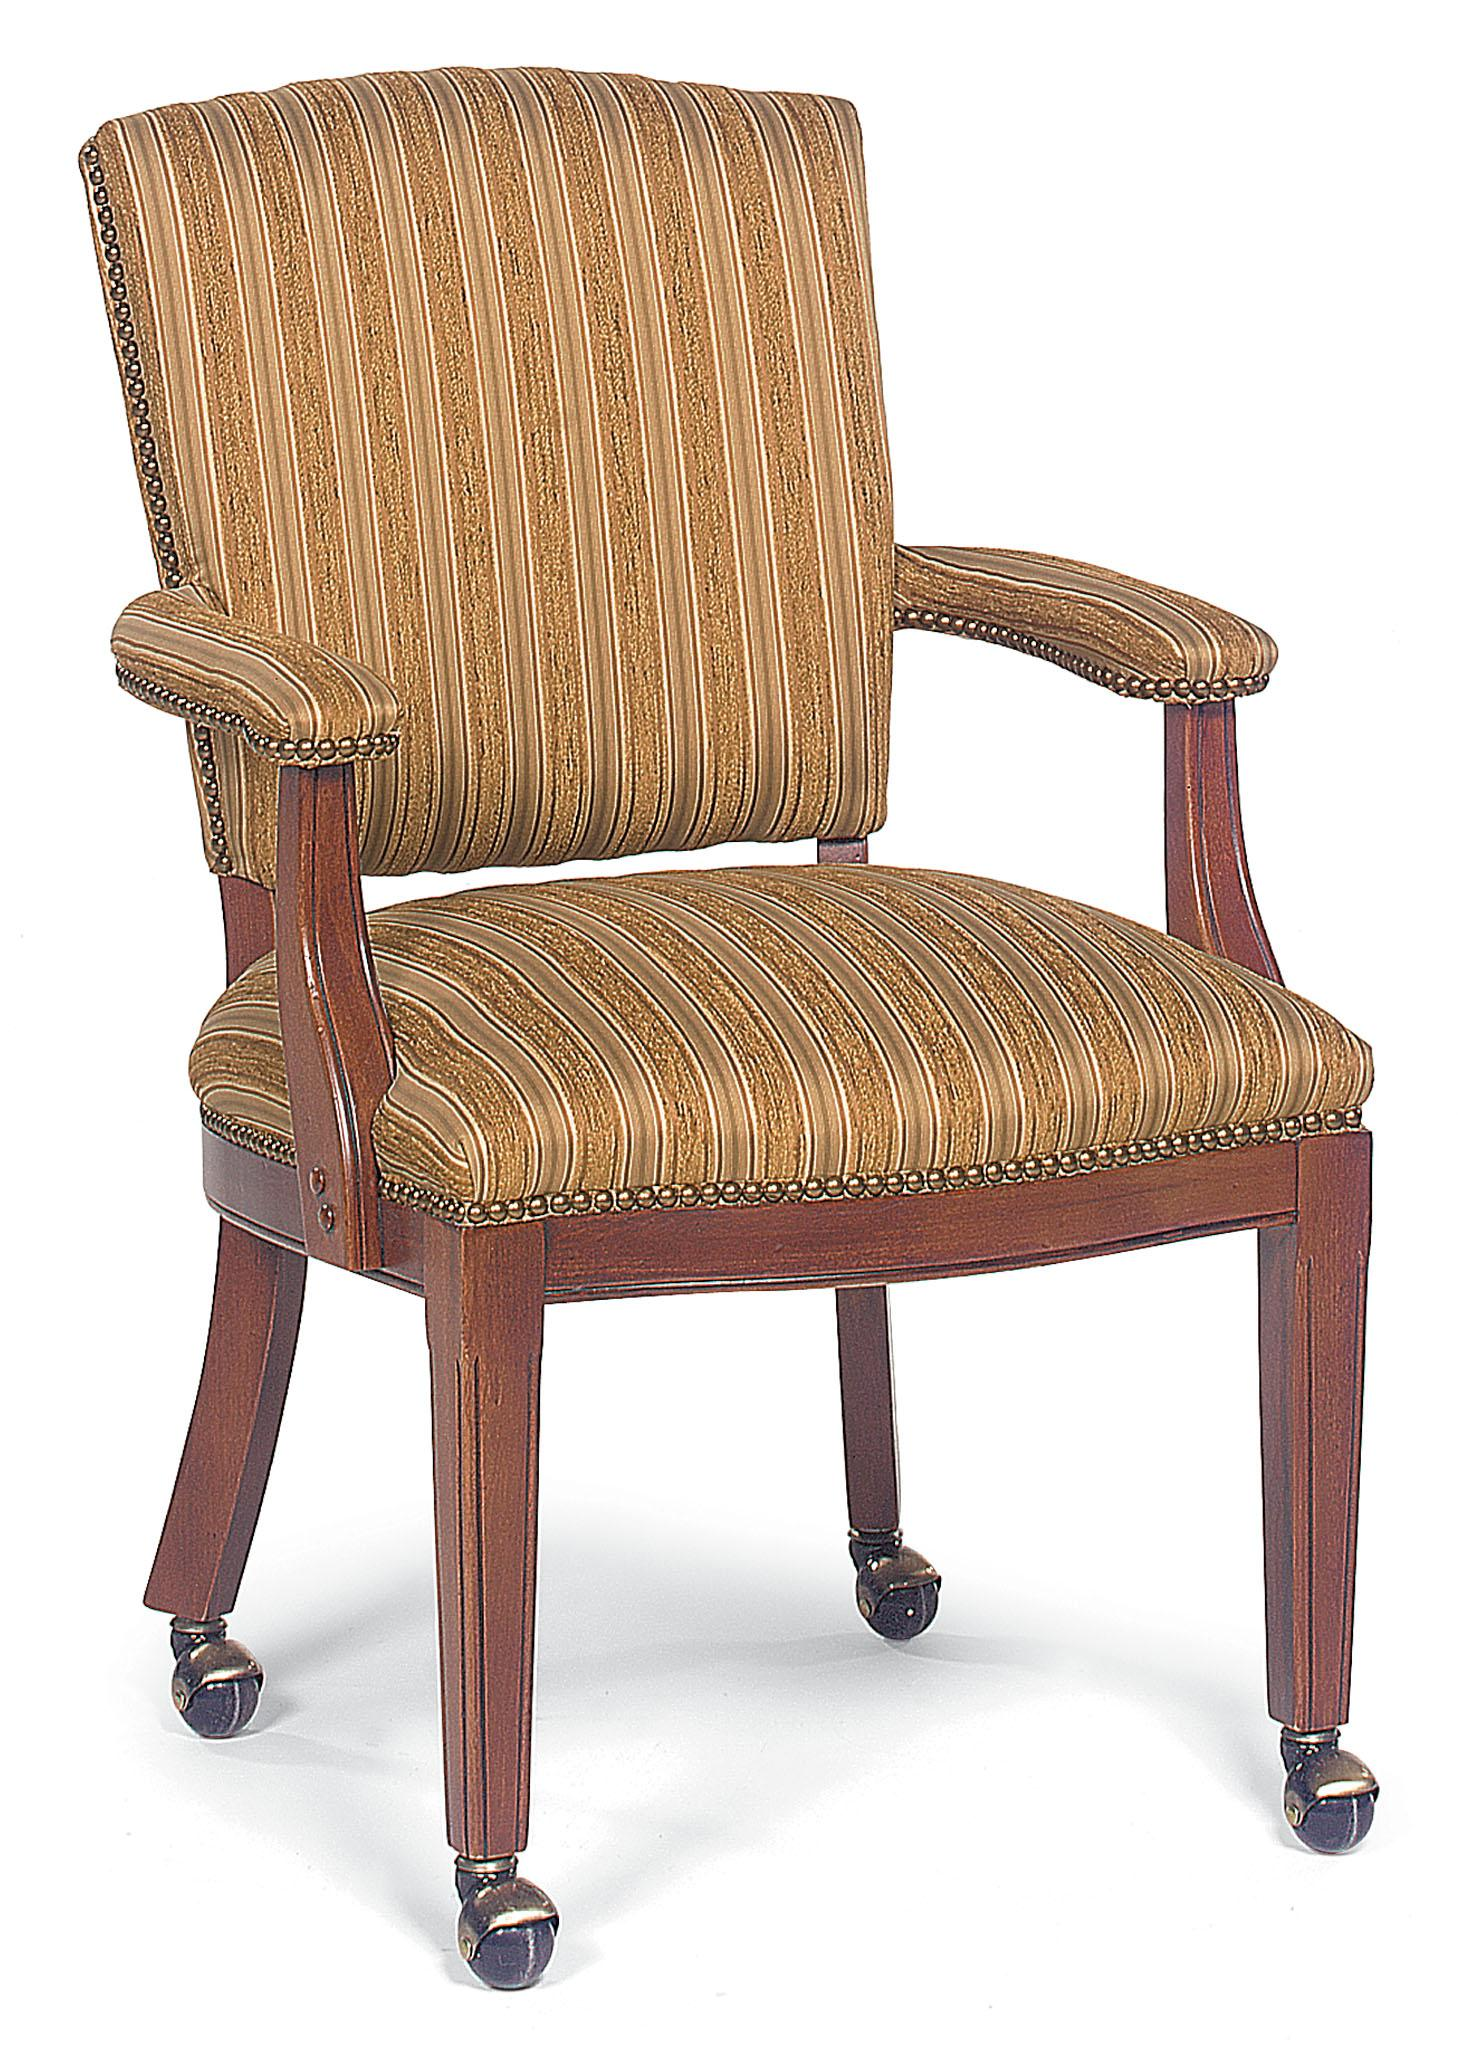 Fairfield Chairs Upholstered Exposed Wood Chair - Item Number: 5110-01